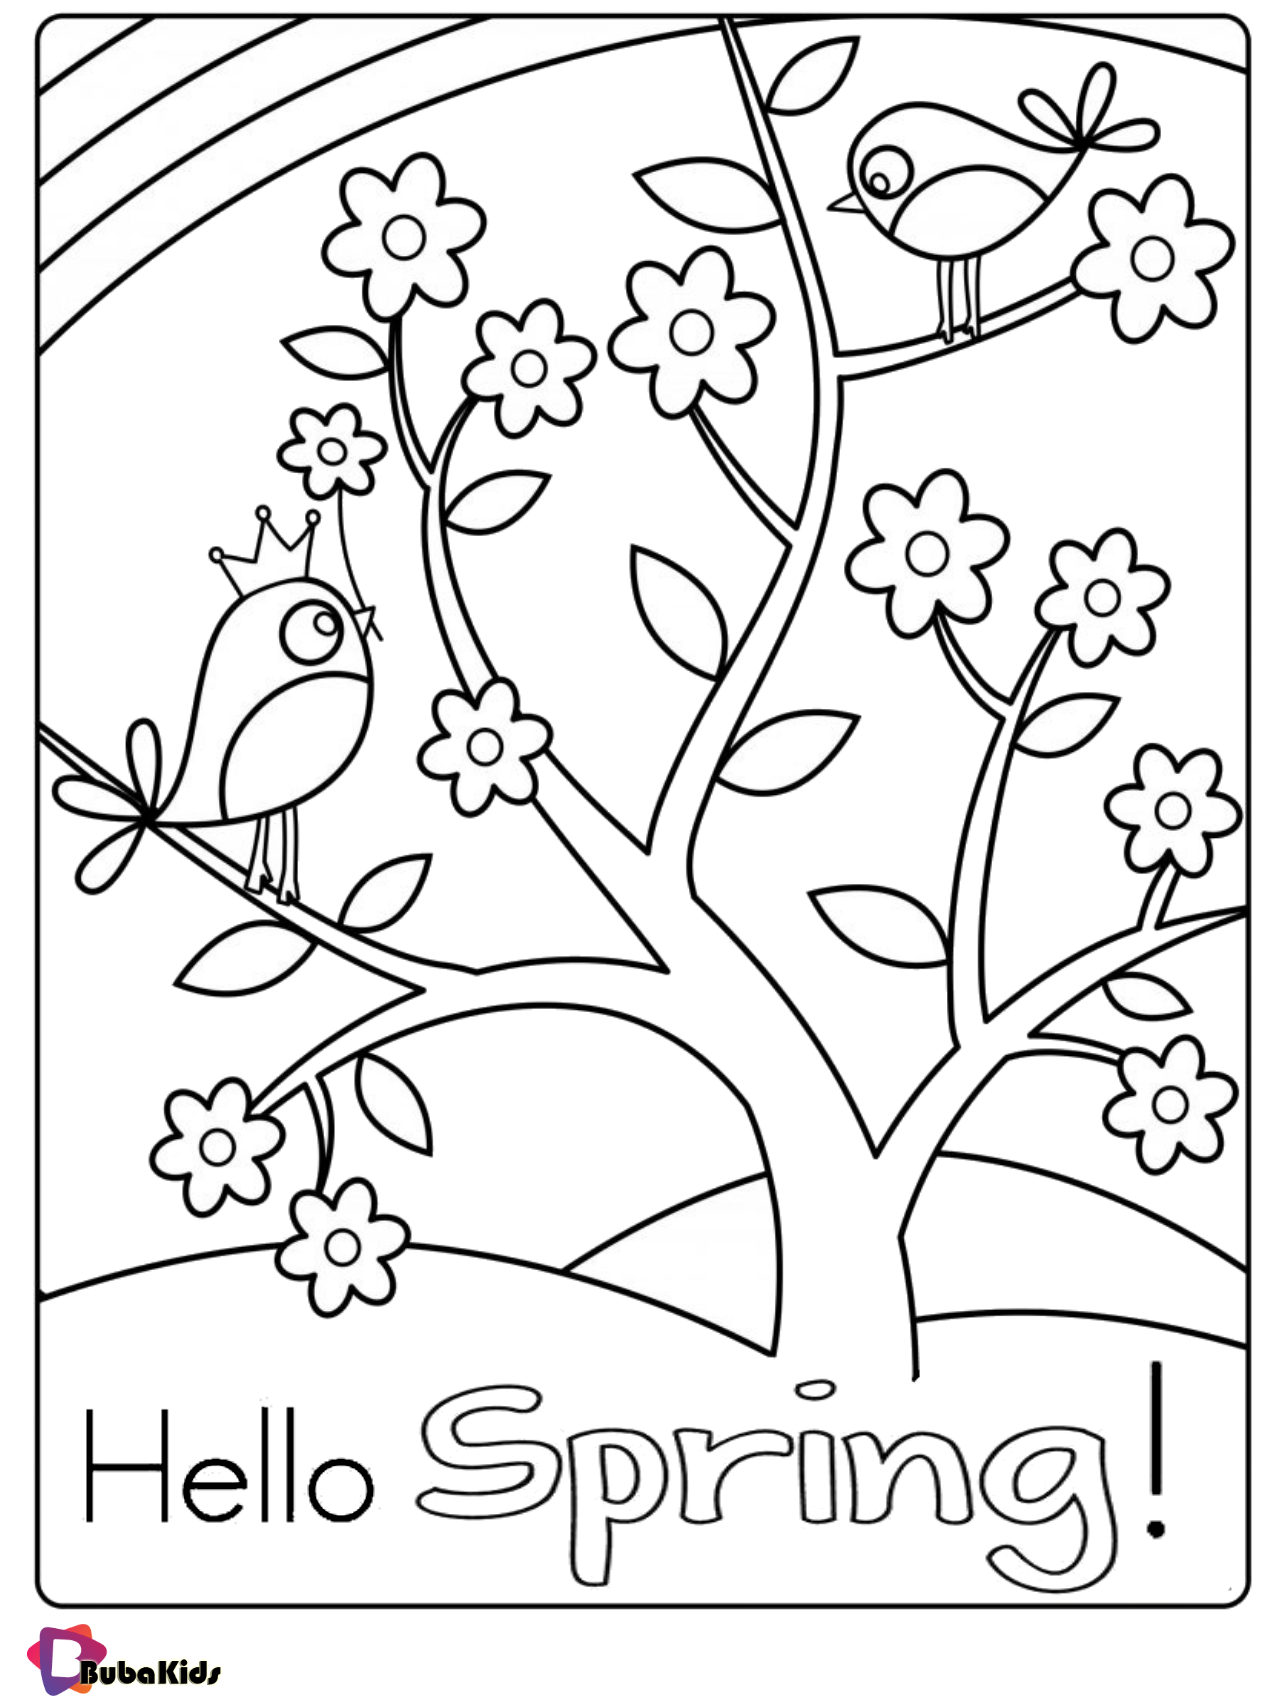 toddler printable coloring pages 40 free printable coloring pages for kids pages toddler coloring printable